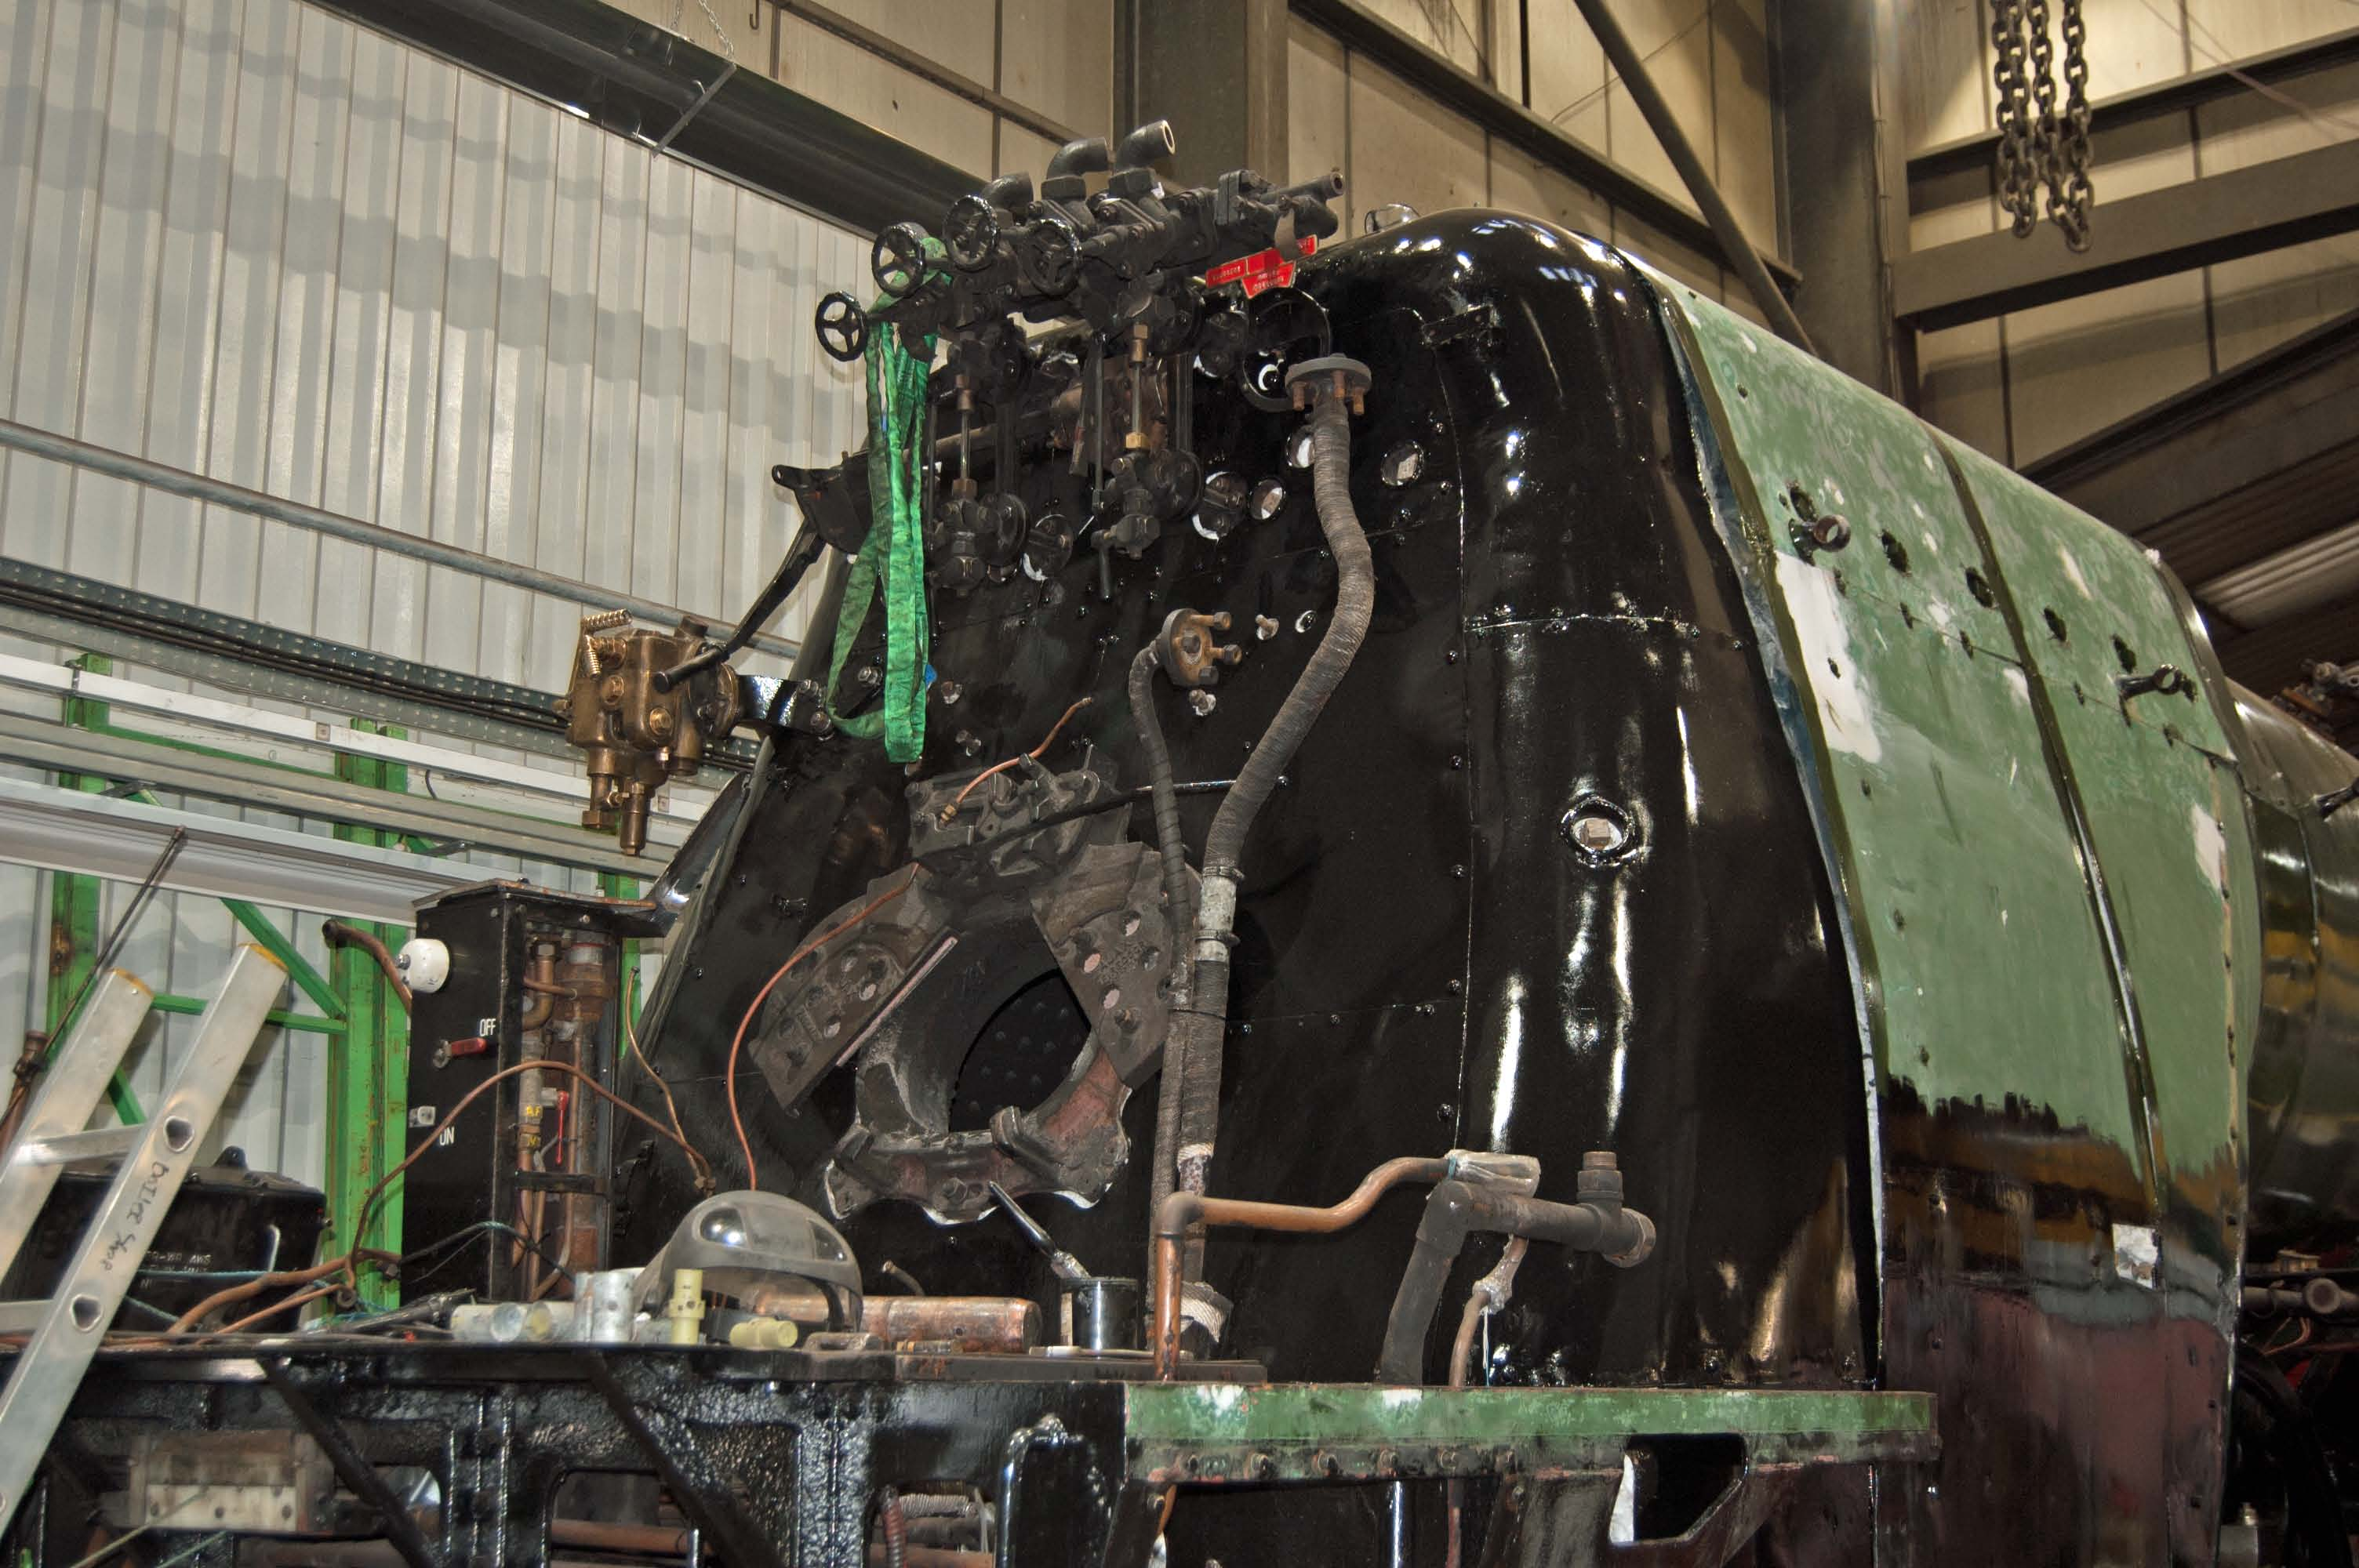 More cab fittings have been added